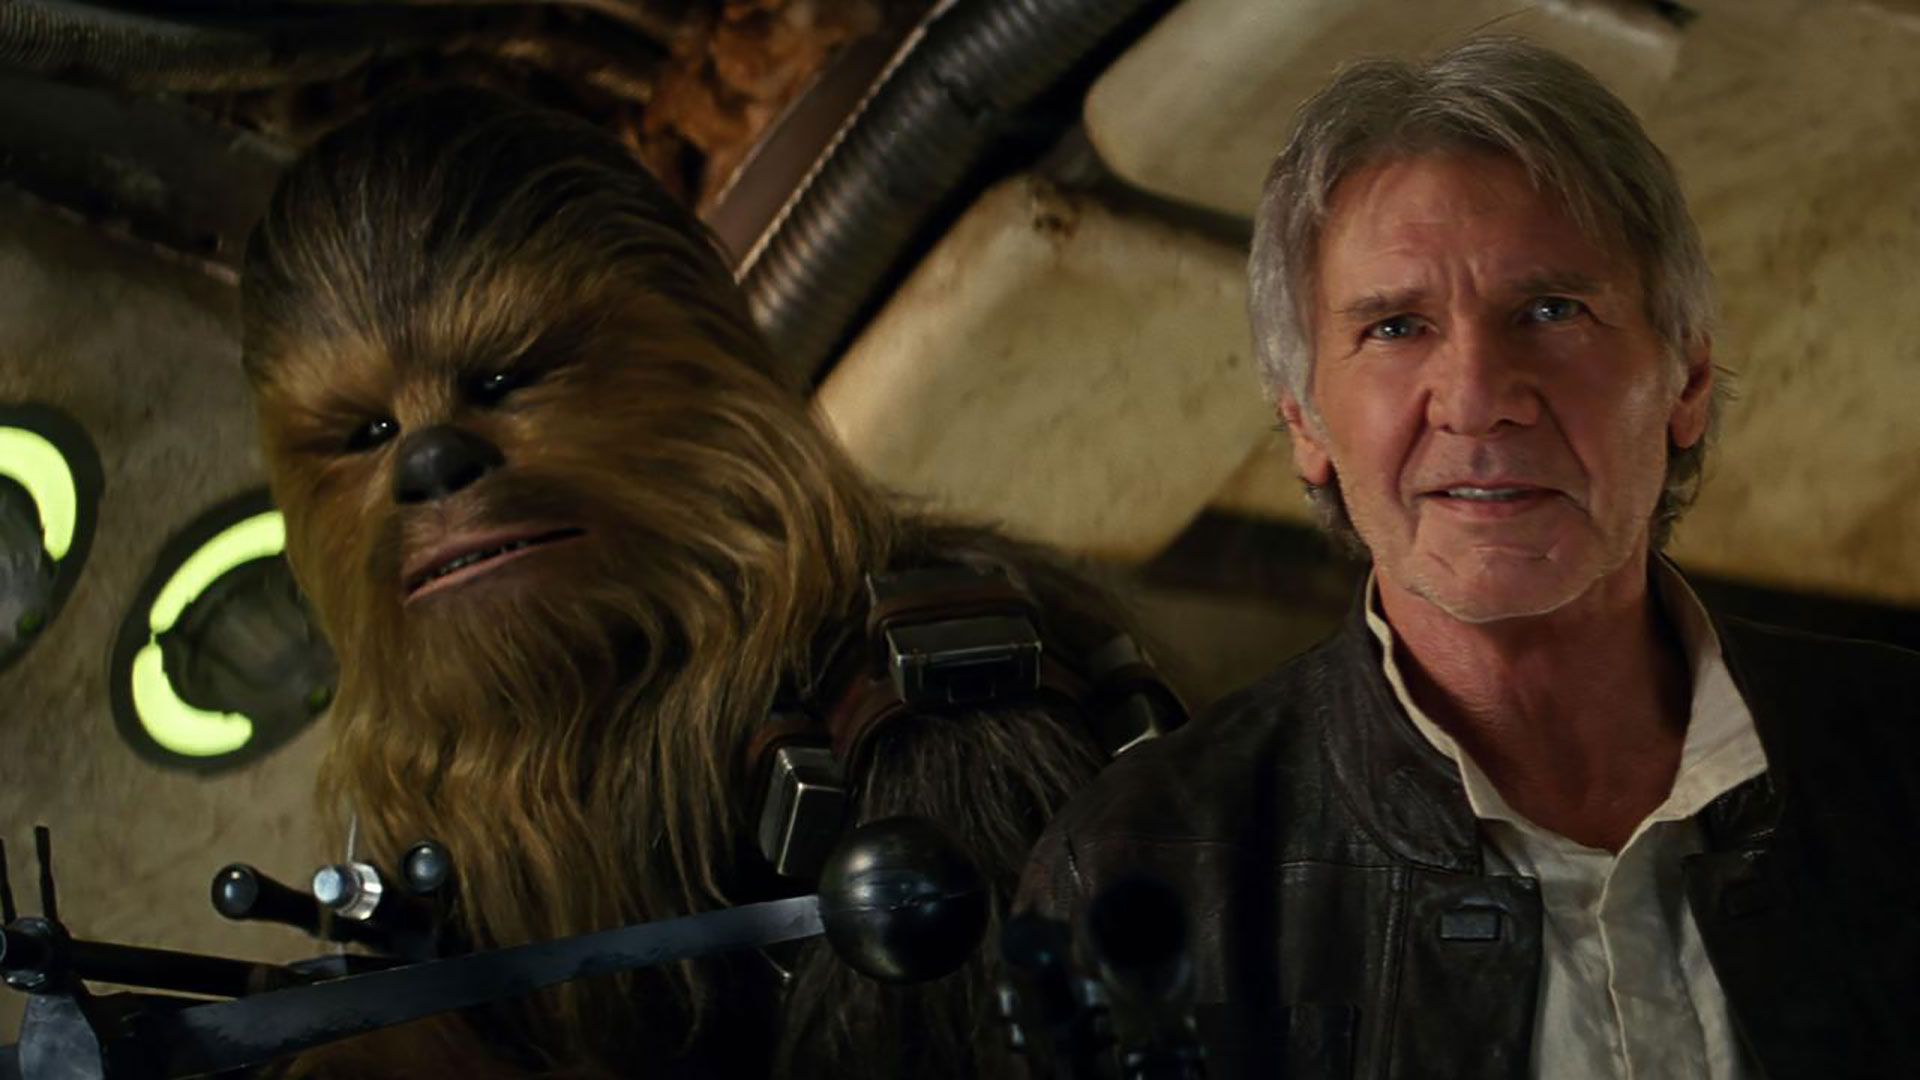 The Force Awakens - Chewie and Han